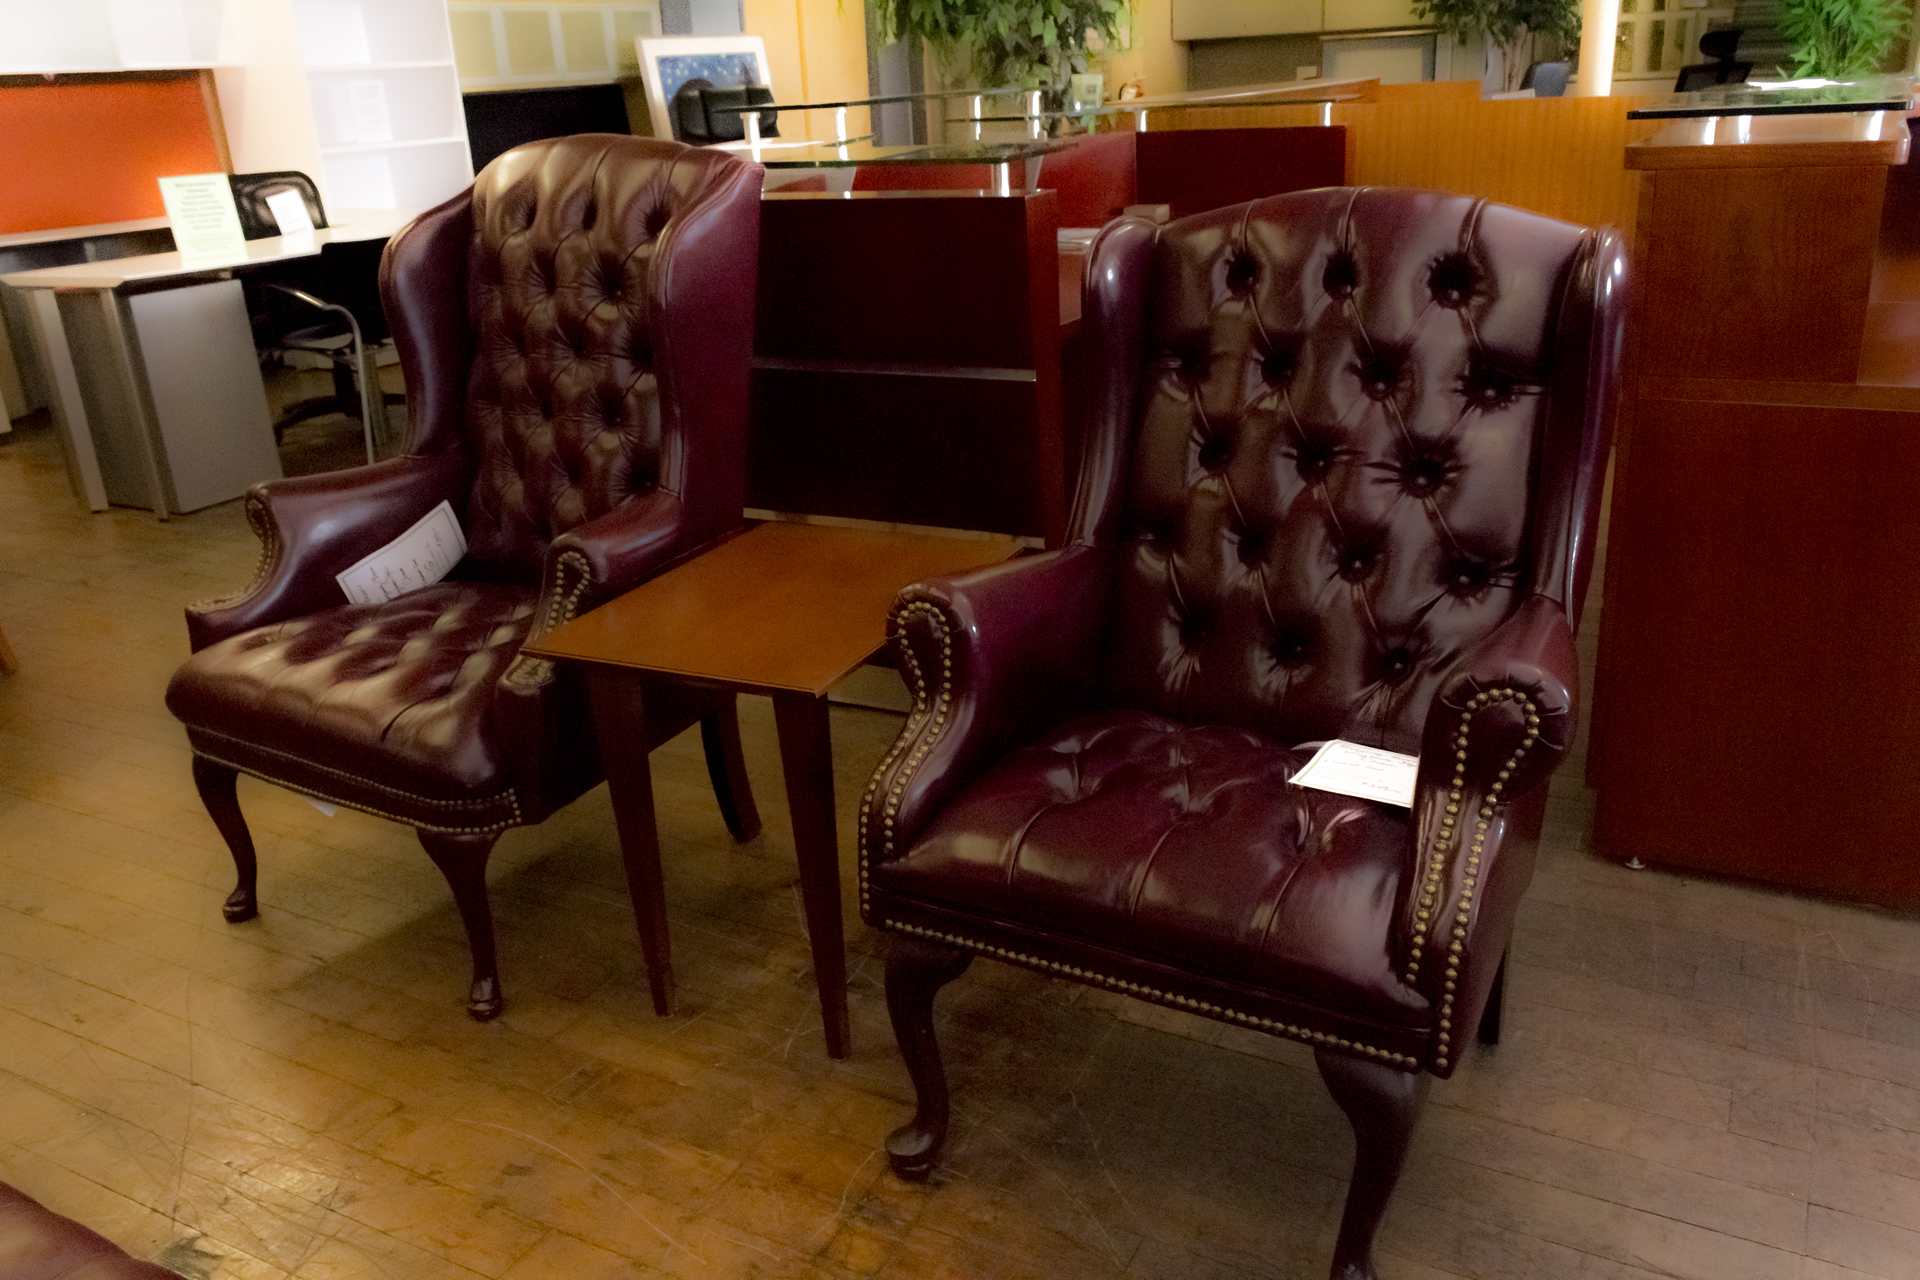 Burgundy Tufted Wingback Chairs.  Peartreeofficefurniture_peartreeofficefurniture_mg_8600.  Peartreeofficefurniture_peartreeofficefurniture_mg_8614